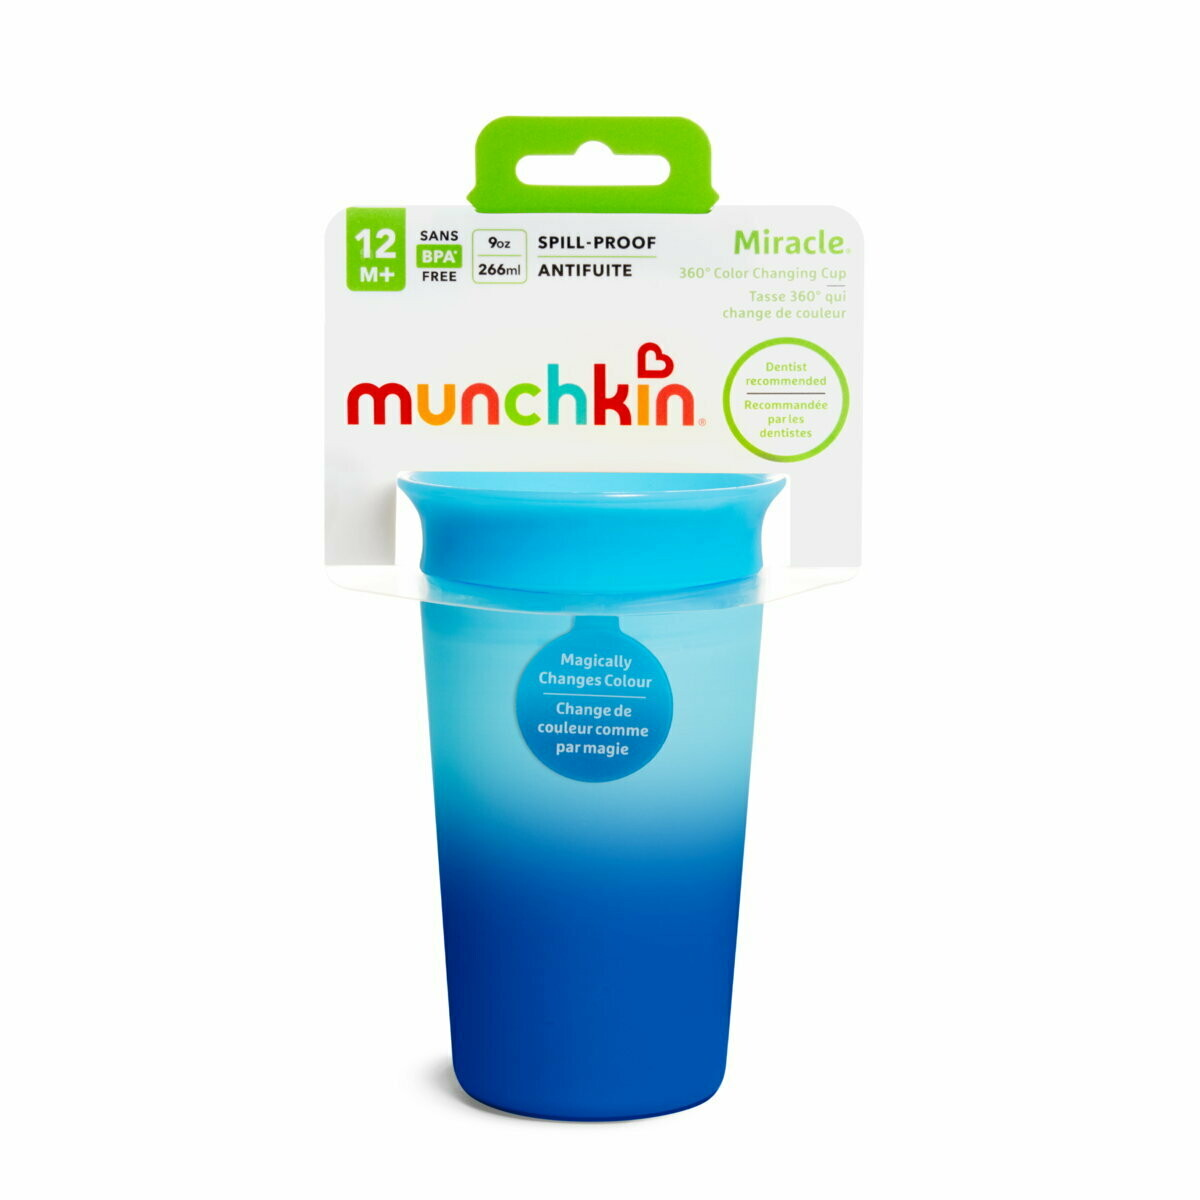 Munchkin-COLOR CHANGING MIRACLE CUP